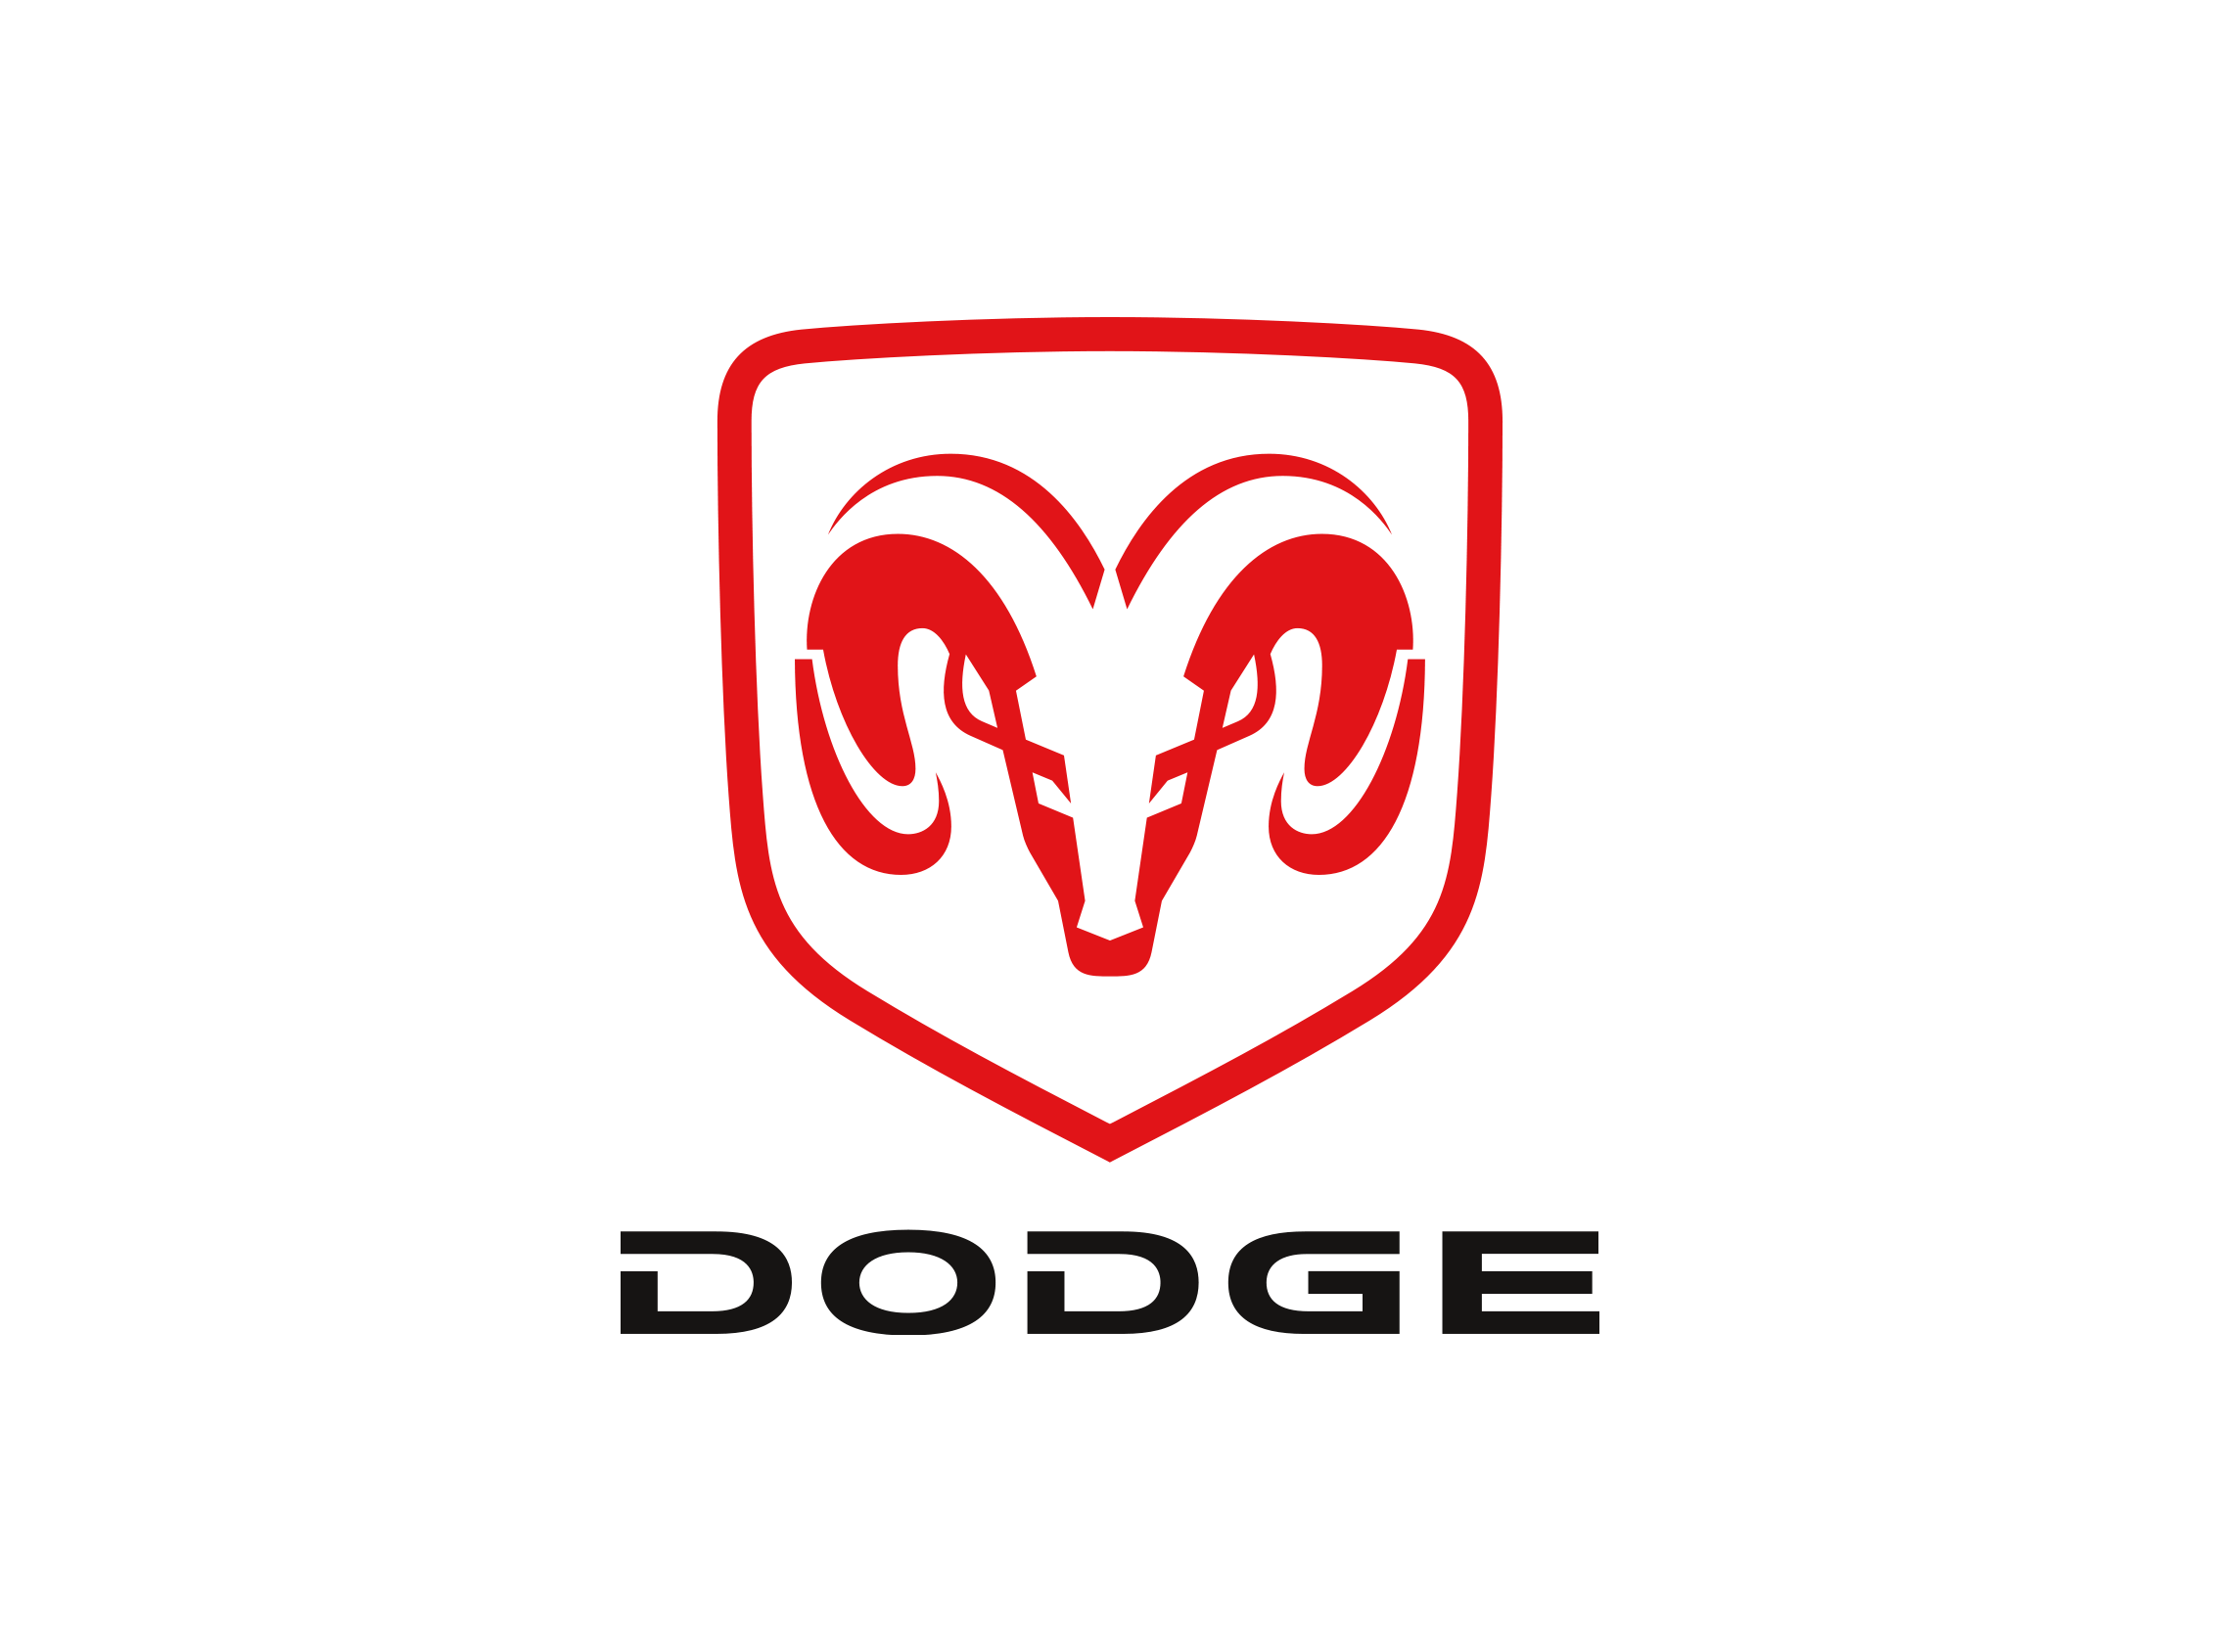 DODGE MOTOR IMPORT BRANDS VOITURE IMPORT USA MIAMI IMPORT VOITURE EUROP IMPORT USA MOTOR IMPORT7 - LEXUS DUBAI importation voiture Dubai LEXUS importation vehicule emirats arabe unis motorimport